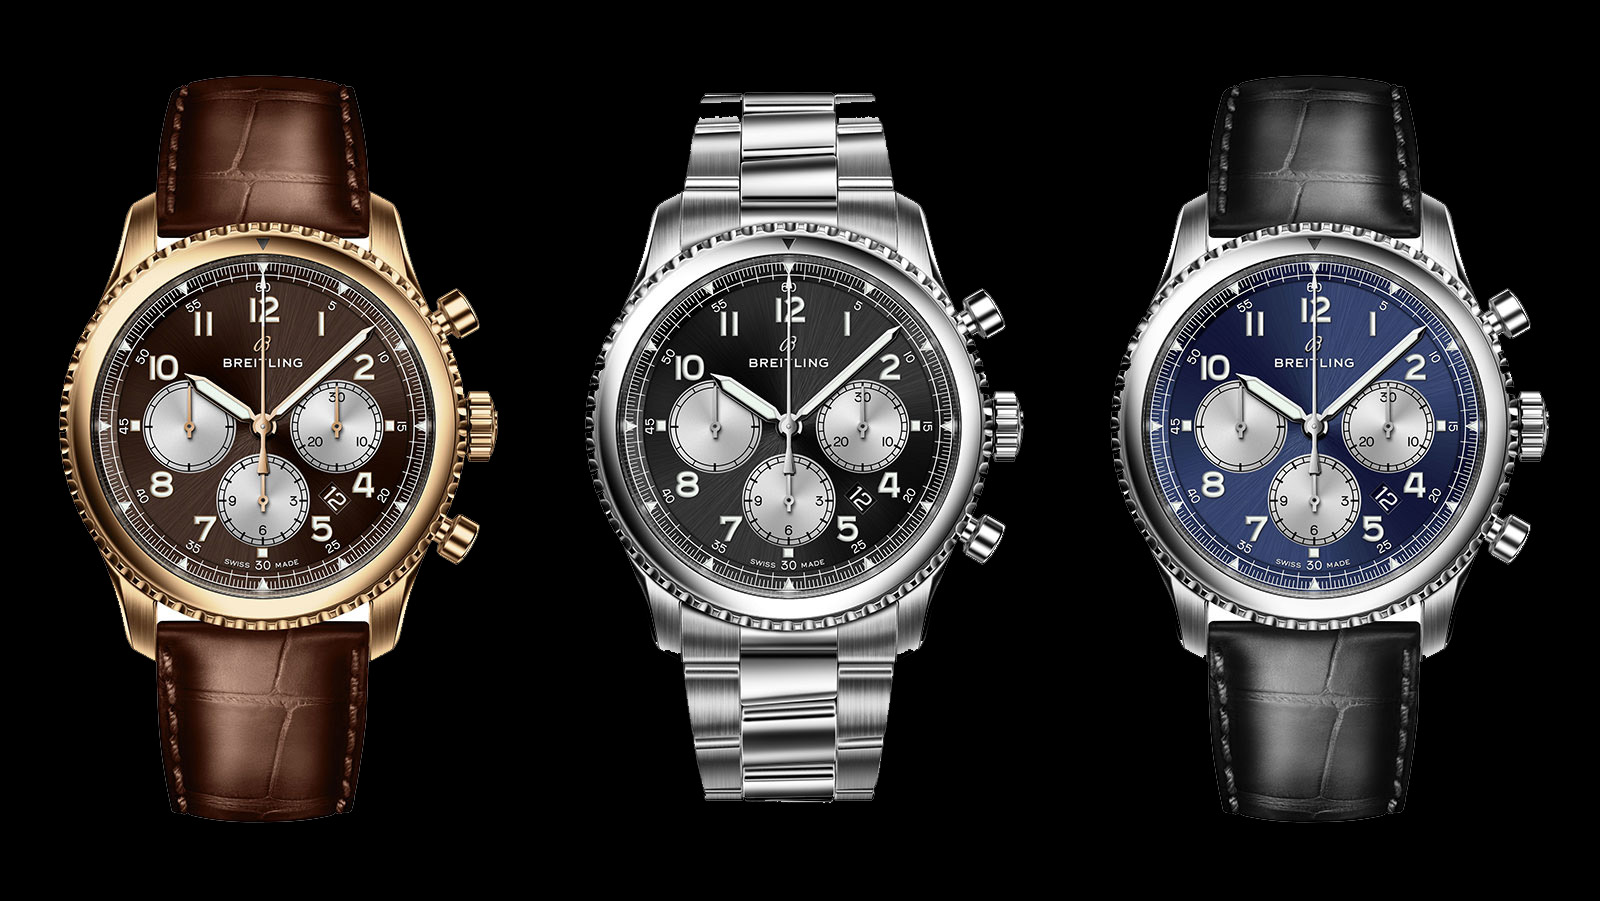 Breitling S Rebirth Begins With The Navitimer 8 Collection With